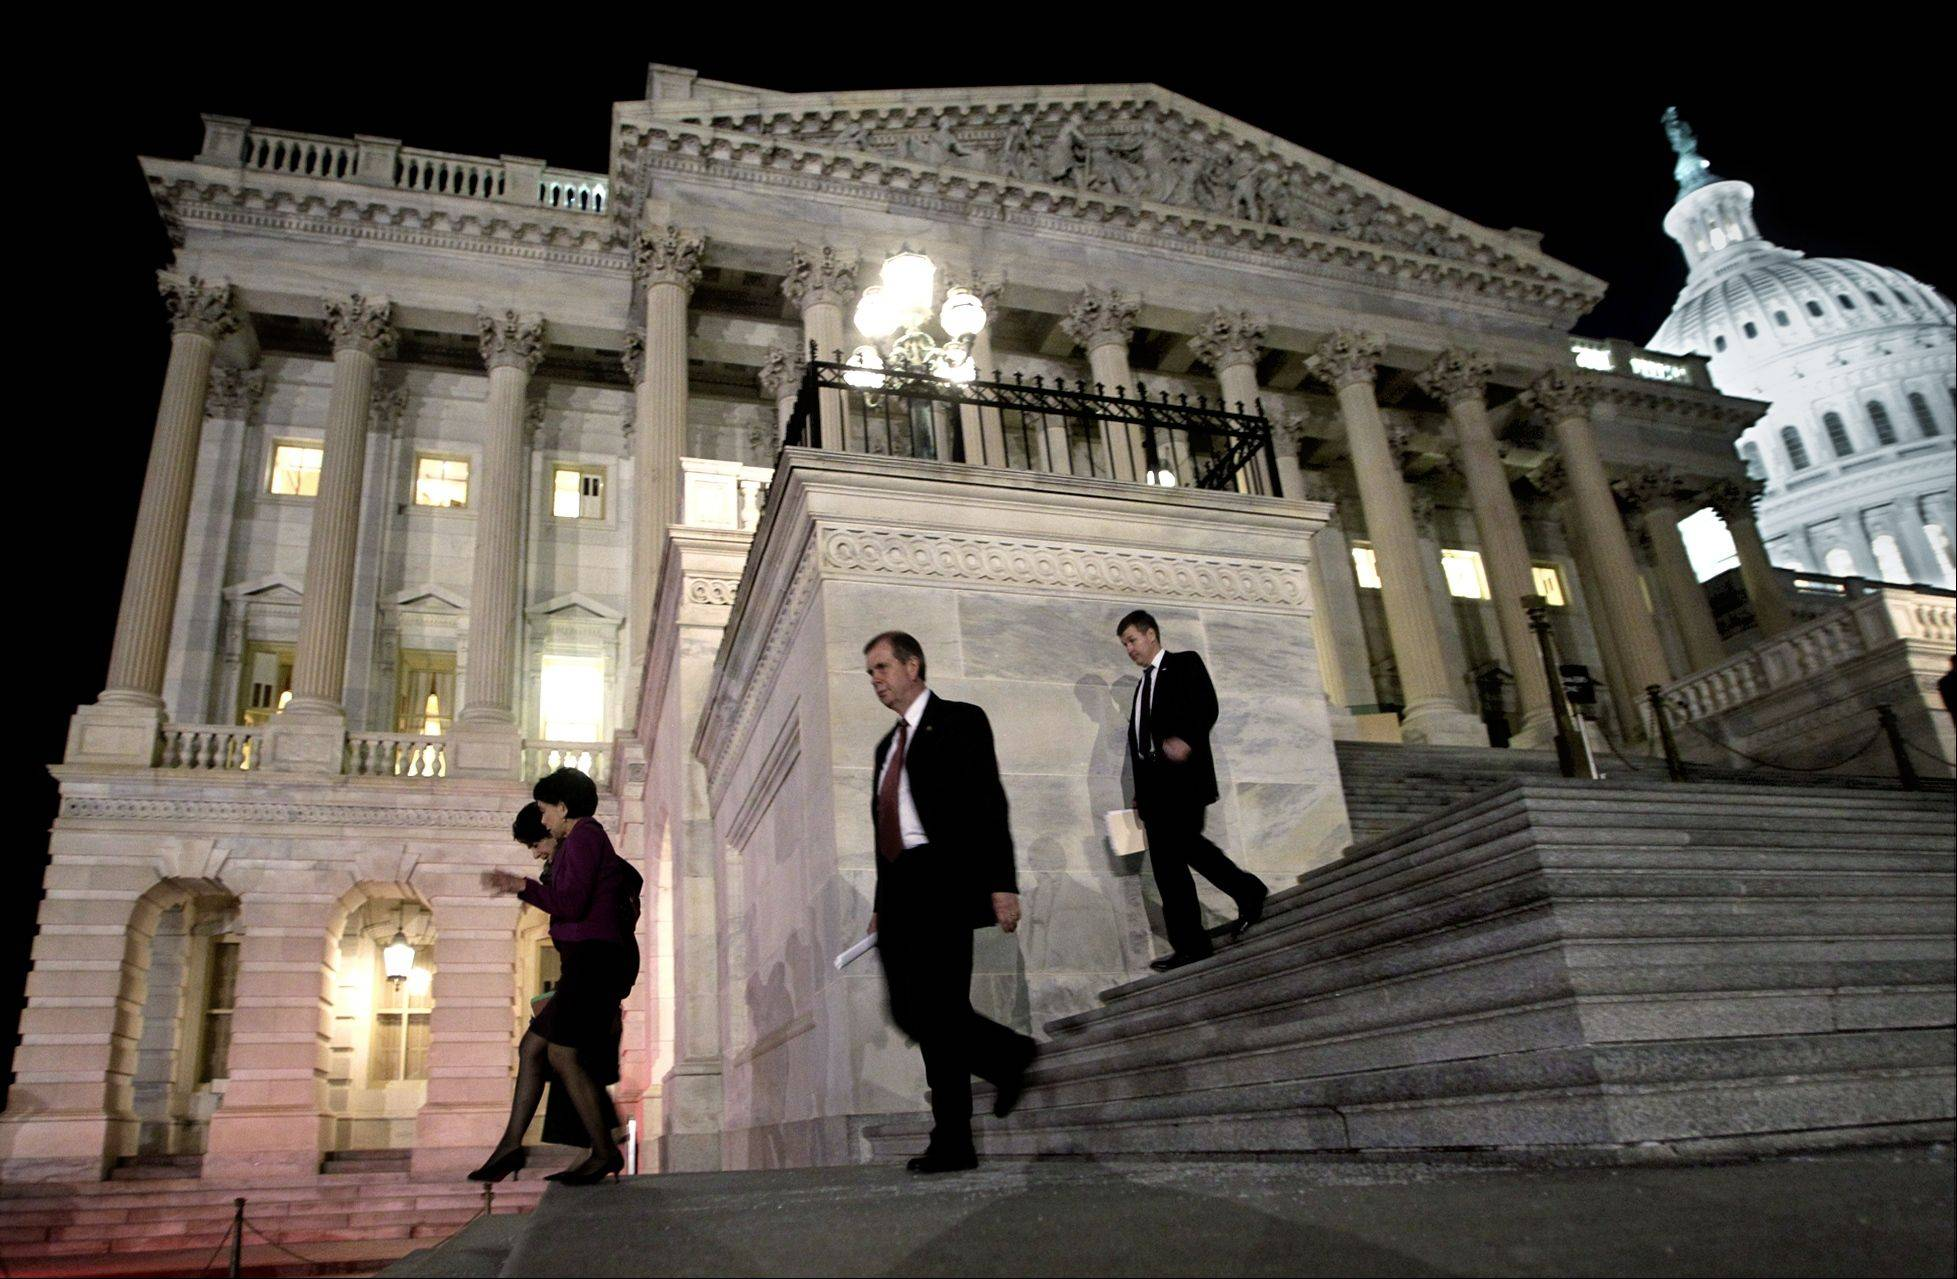 Congressmen walk down the steps of the House of Representatives as they work throughout the night on a spending bill, on Capitol Hill in Washington.